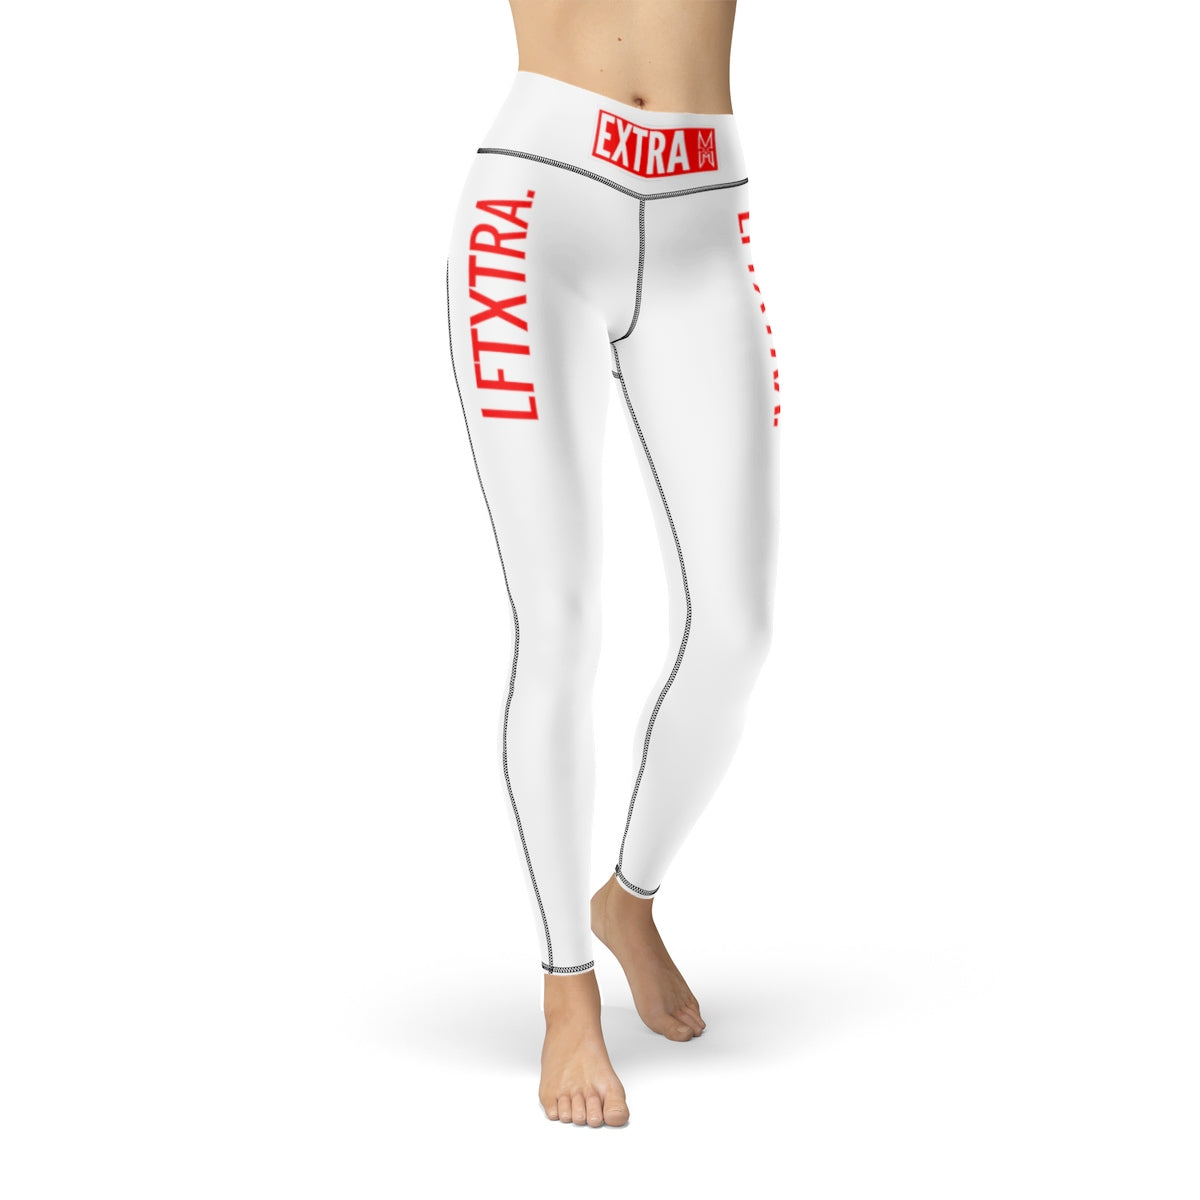 XM Gymwear Extra Red and White Women's Cut & Sew Sport Leggings